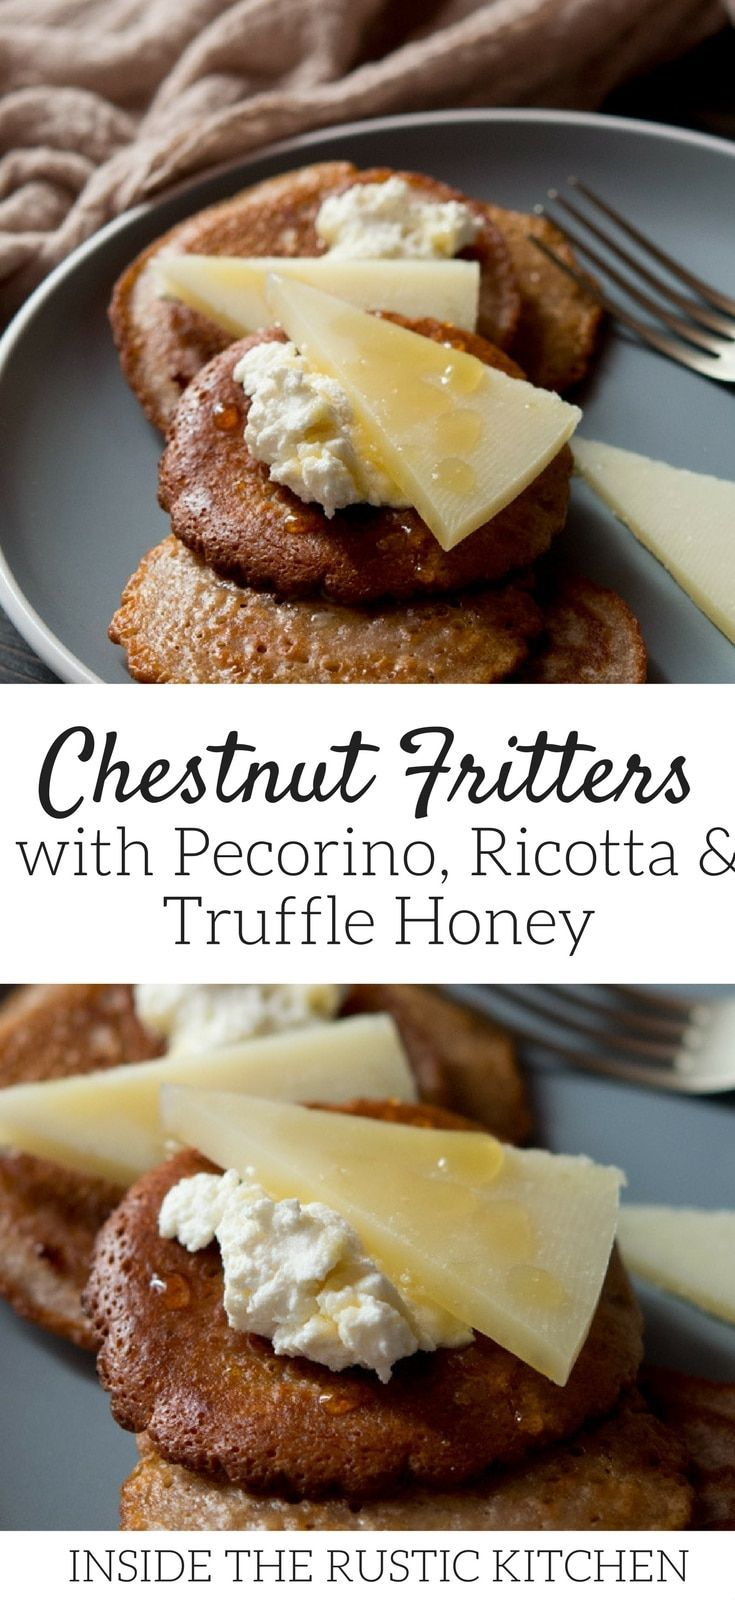 Easy chestnut fritters with ricotta, pecorino cheese and drizzled with truffle honey. These sweet and savoury Italian treats are festive, delicious and so easy to make. More traditional Italian recipes at Inside The Rustic Kitchen. #Italianfood #chestnut #festivefood  via @InsideTRK